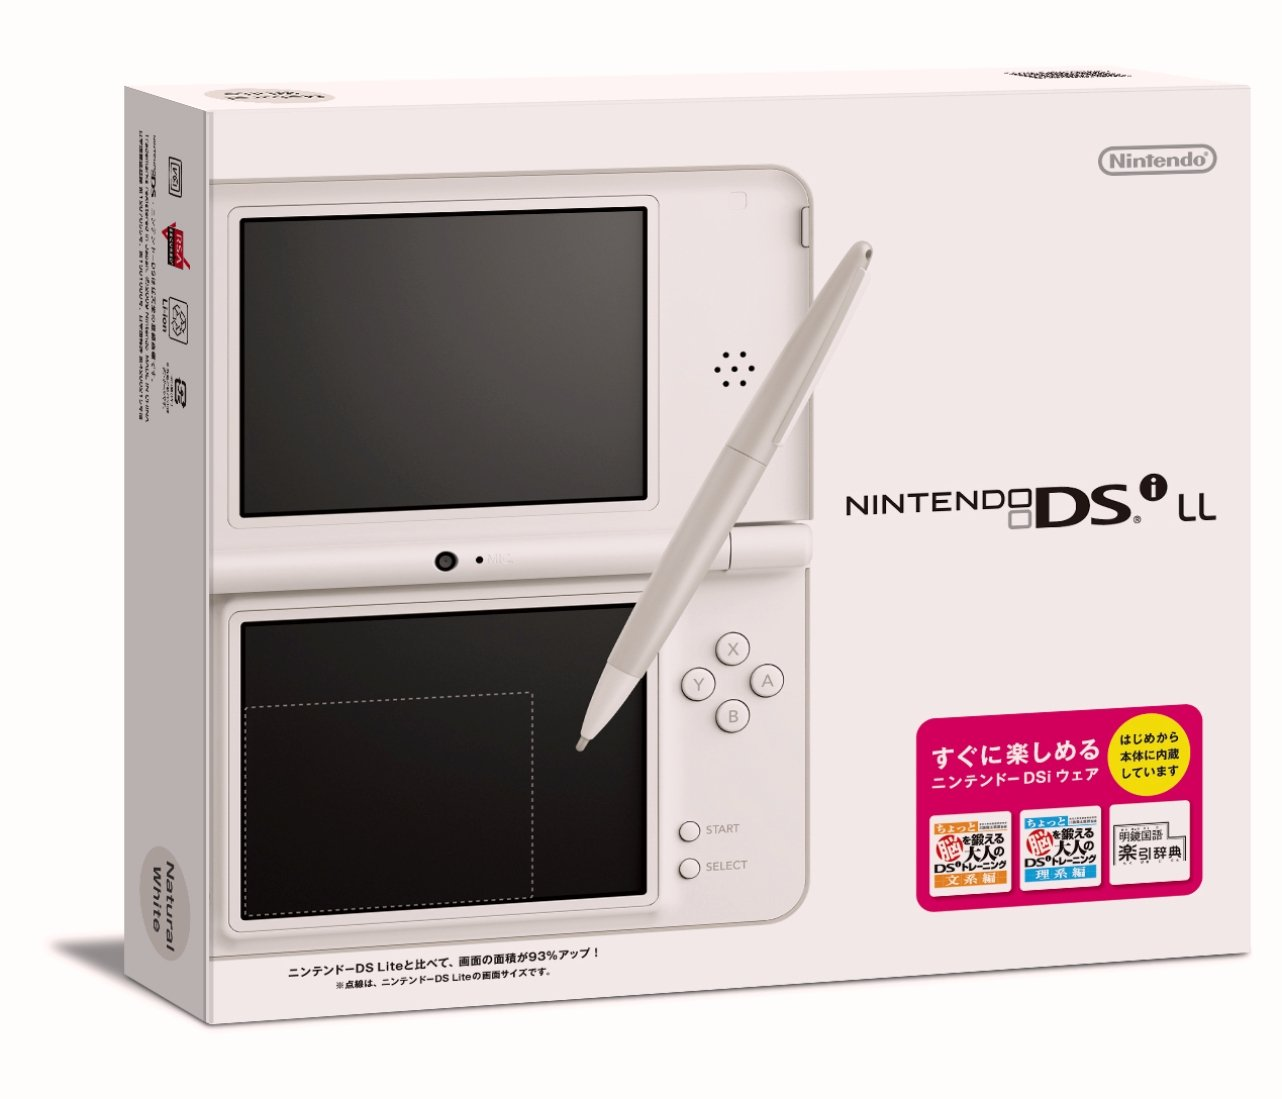 Nintendo Dsill Portable Video Game Console - Natural White - Japanese Version (Only Plays Japanese Version Ds Games)